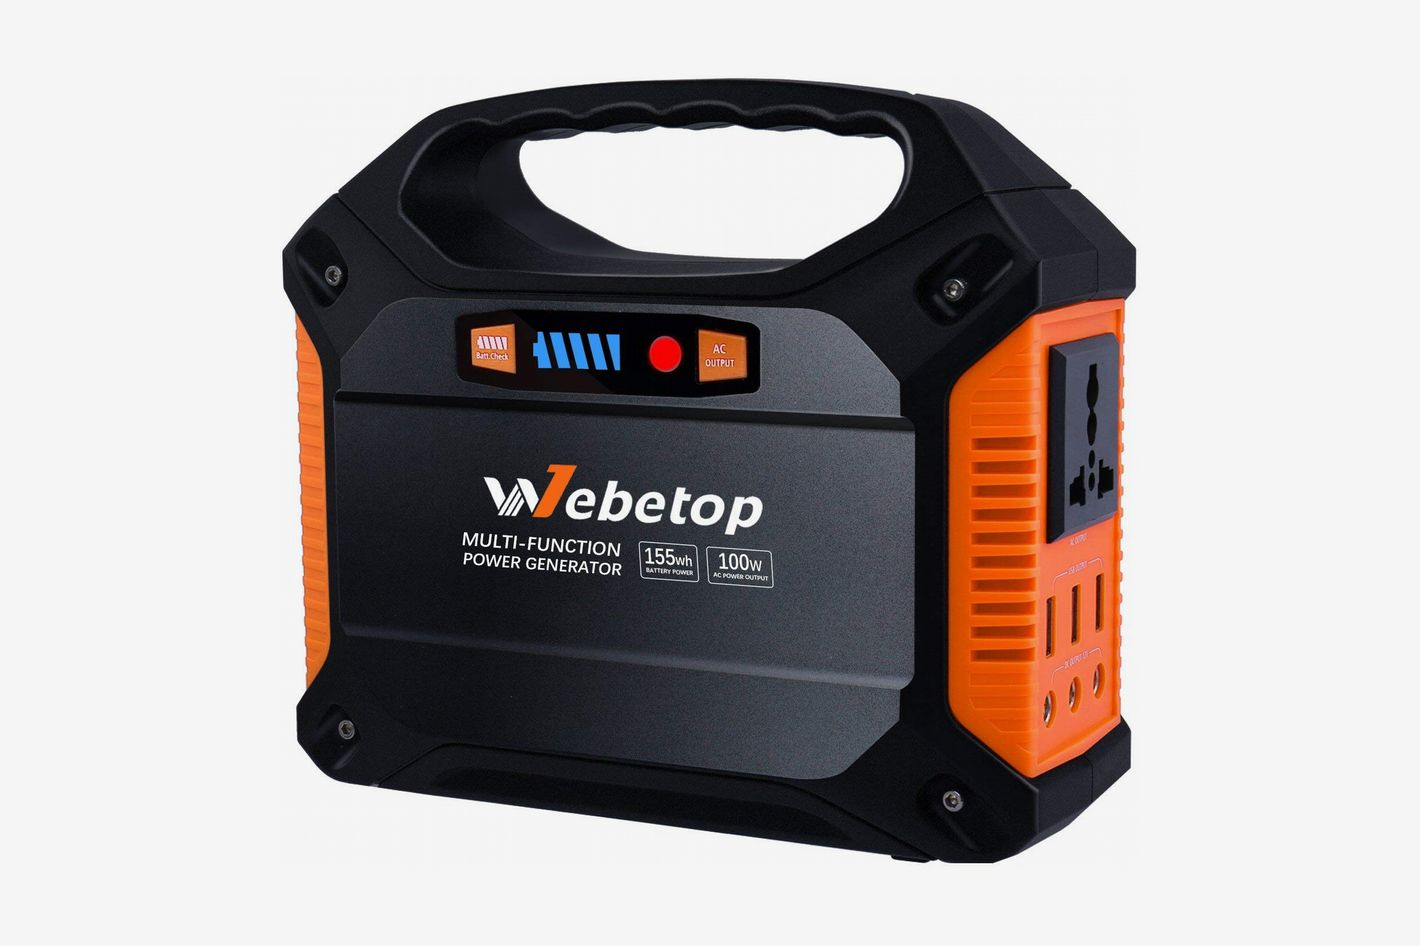 Ecoflow River Mobile Power Station Generator Review 2018